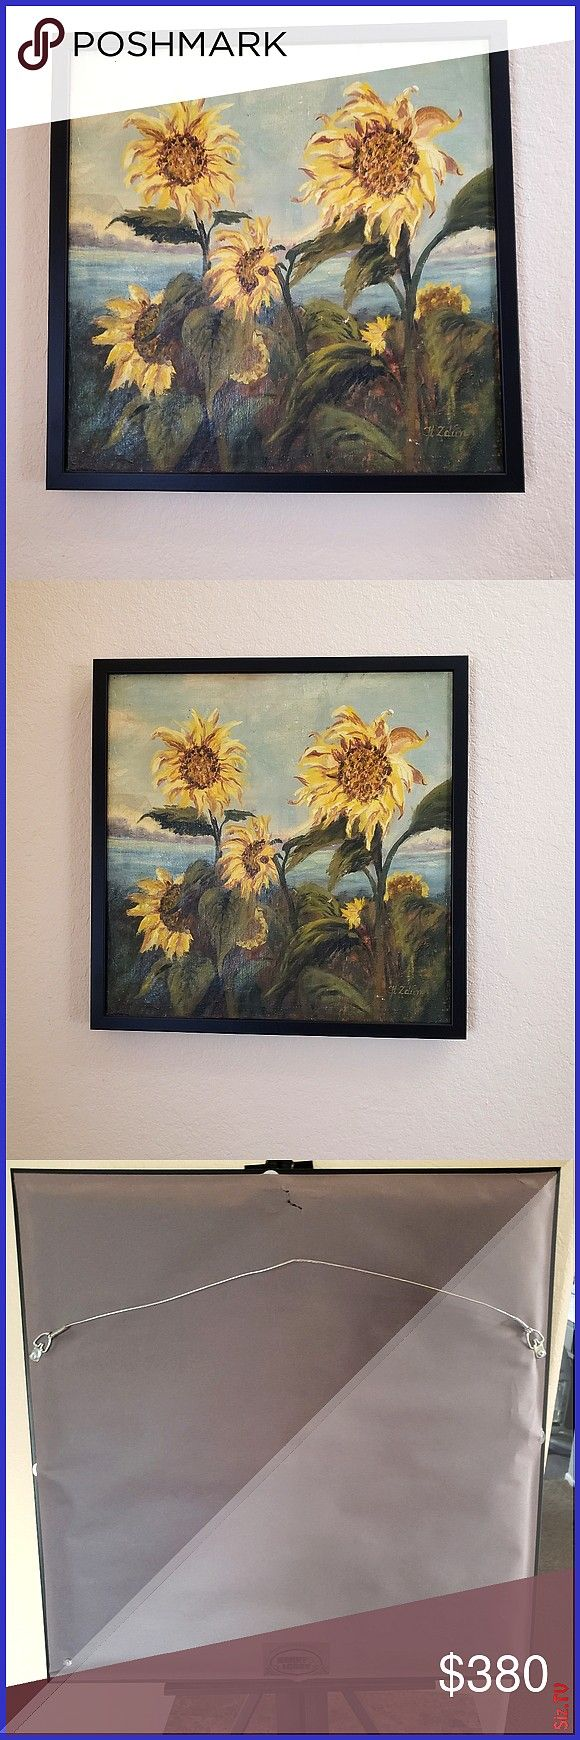 8090 s oil painting 21 25 8243 21 25 8243 Beautiful sunflowers vintage oil painting on canvas Painted by my 86 years old mother many years ago Vintage 8090 s oil painting...